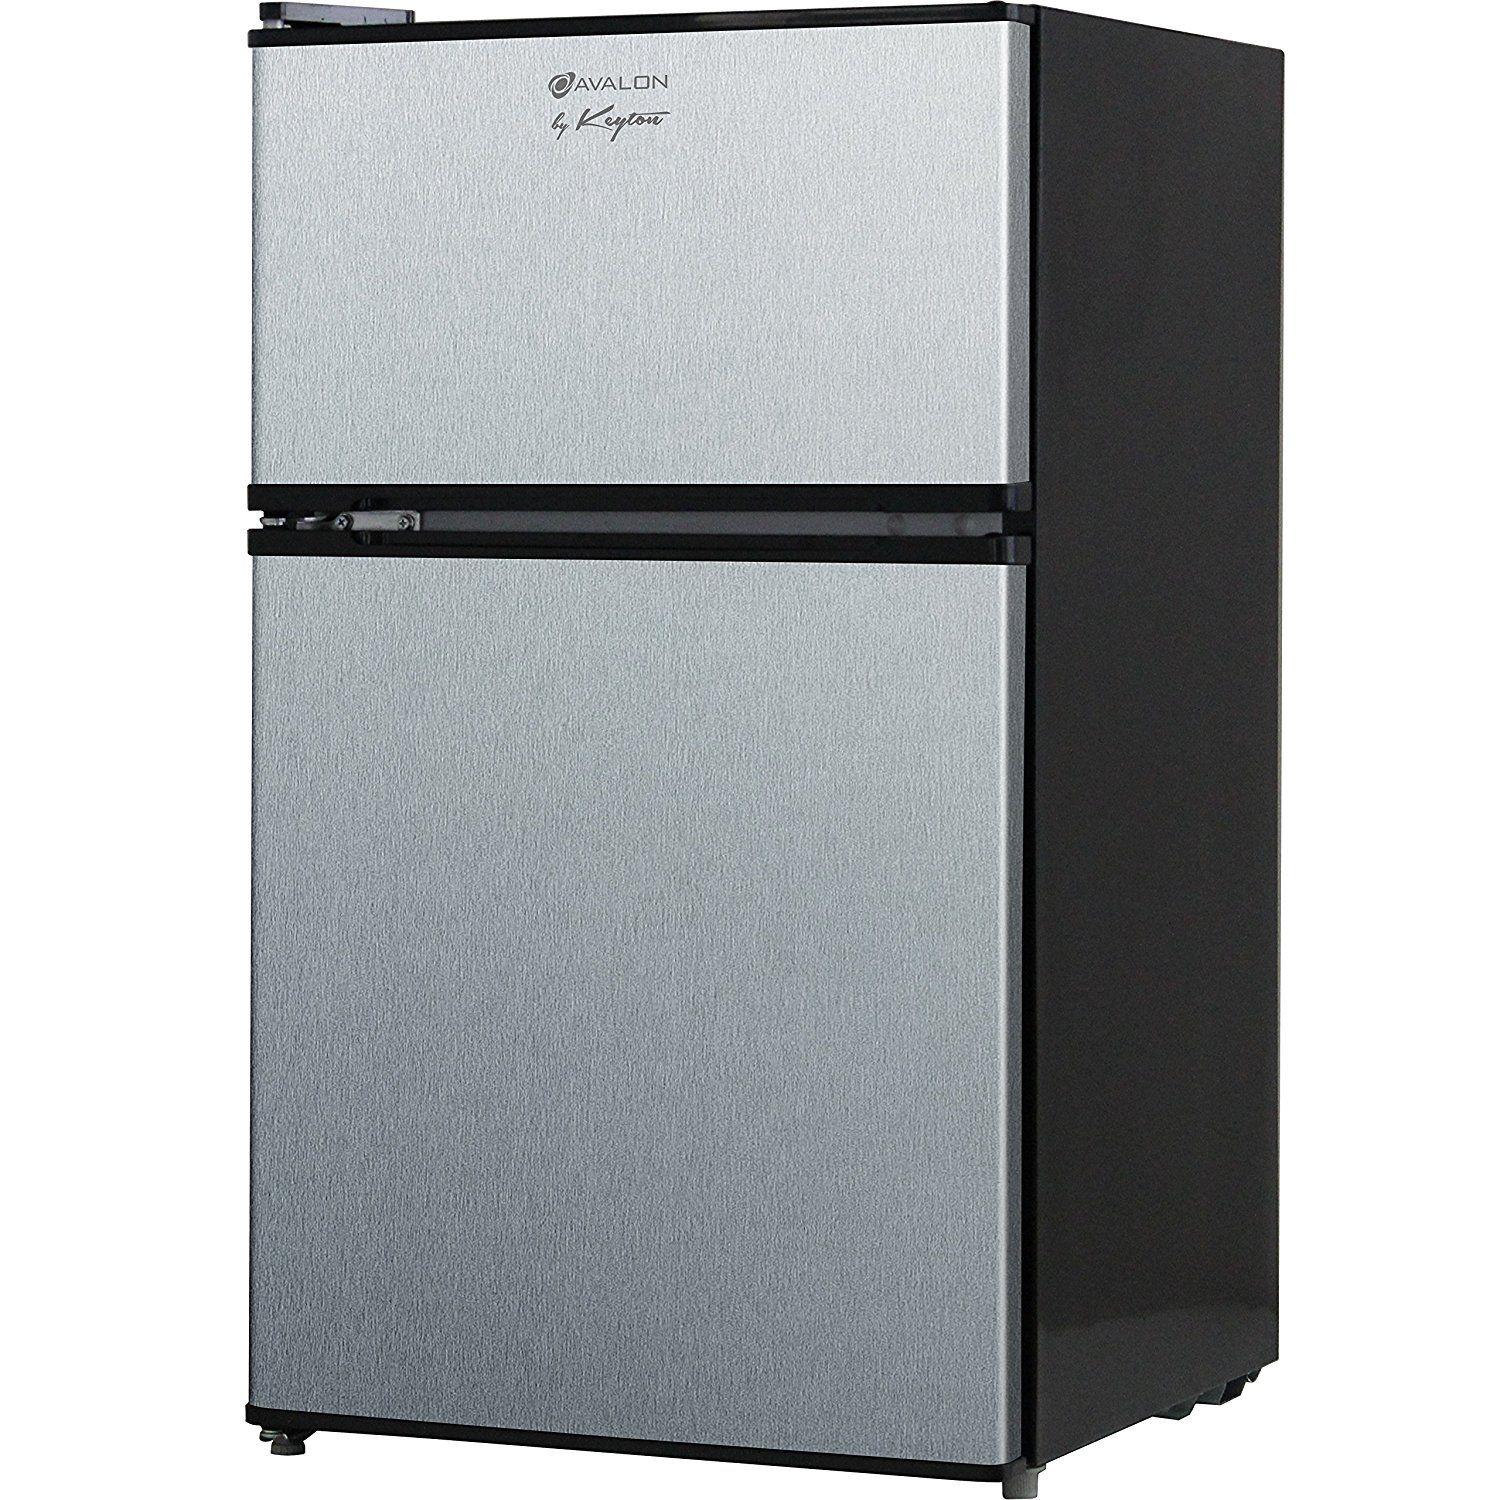 Avalon By Keyton Refrigerator And Freezer With Double Doors